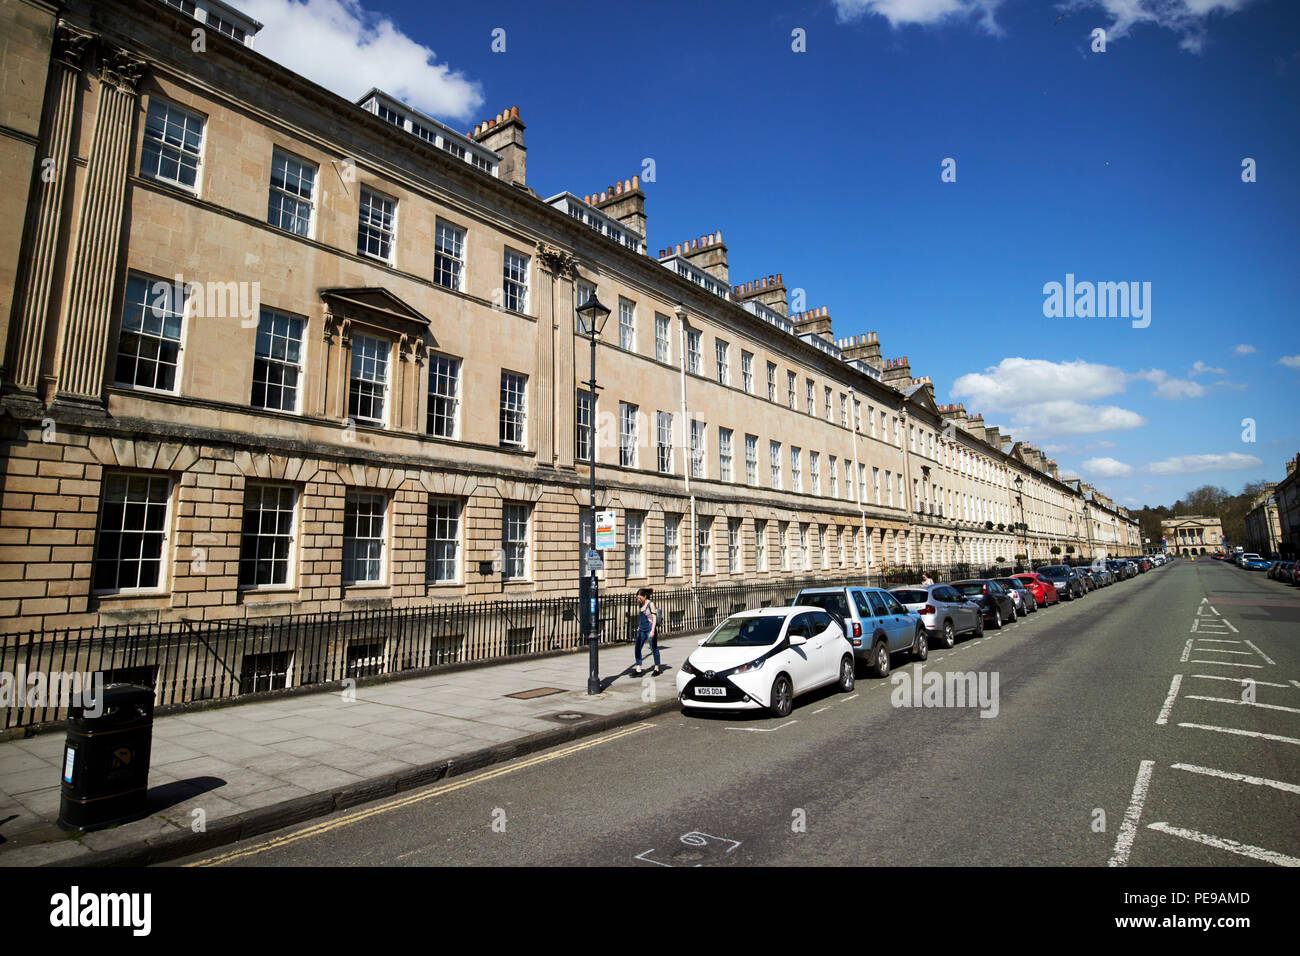 georgian townhouses on great pulteney street Bath England UK - Stock Image